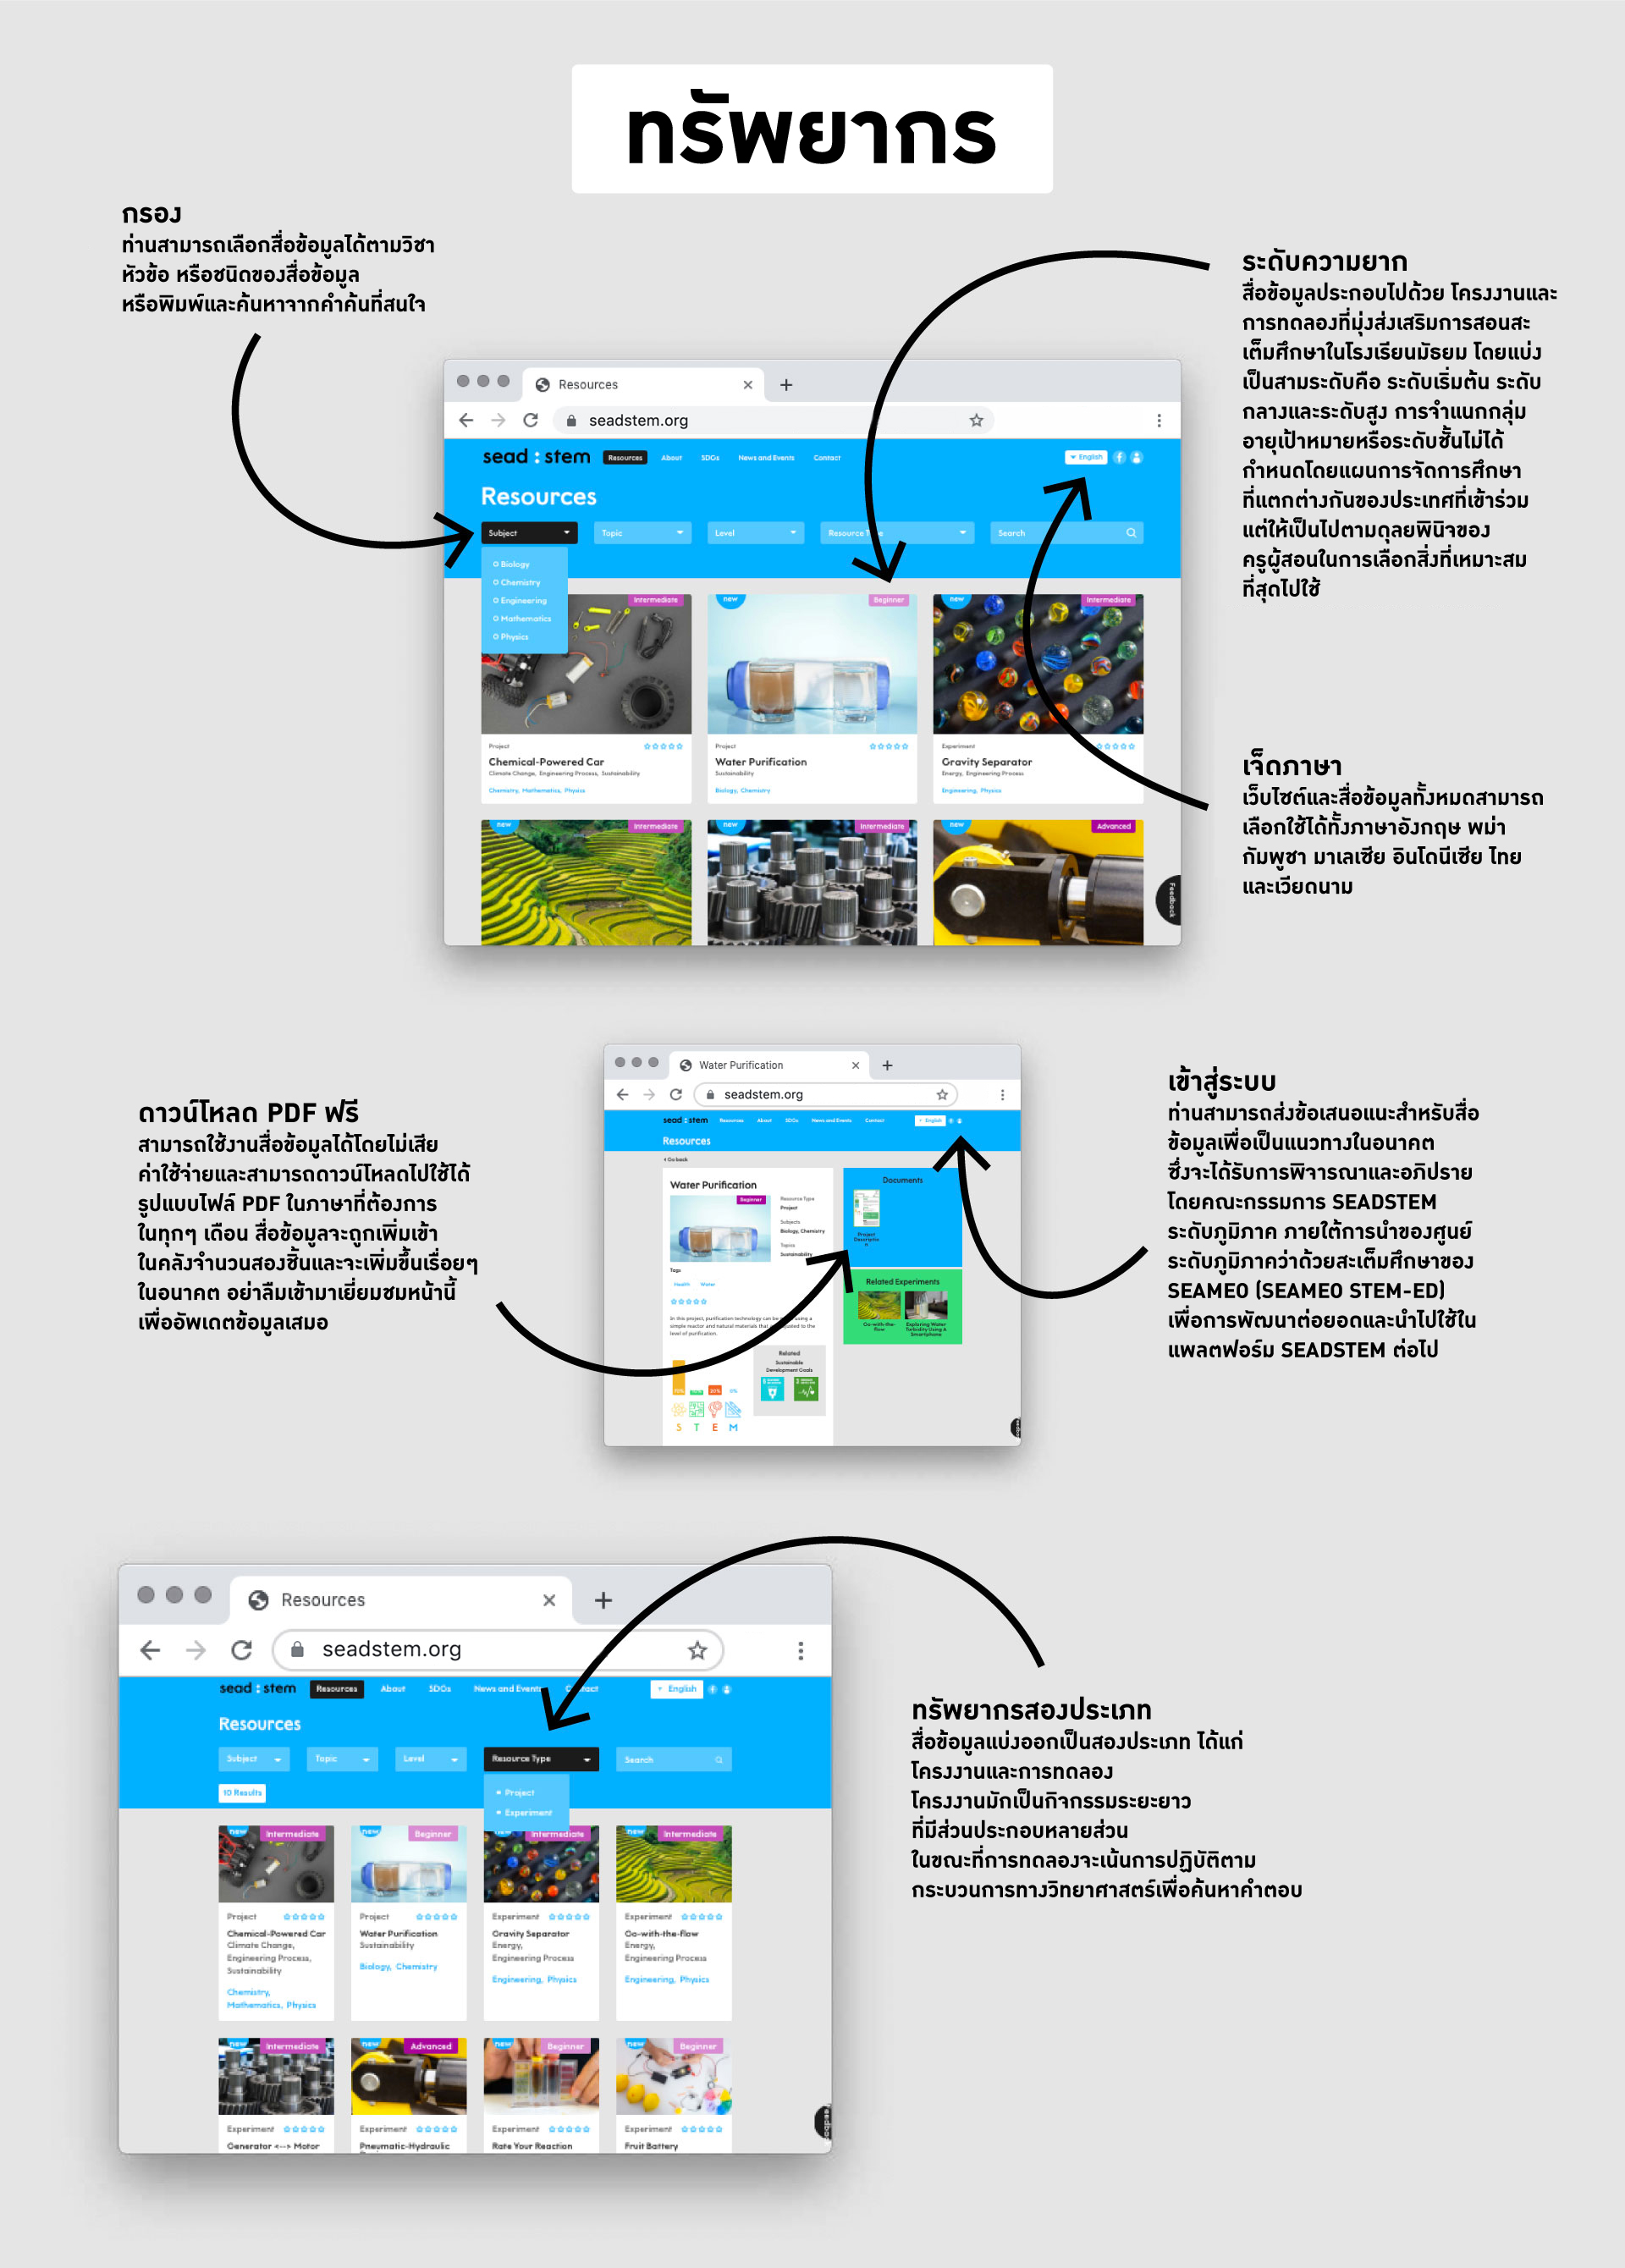 How-to-Use-the-Website-Graphic_Thai